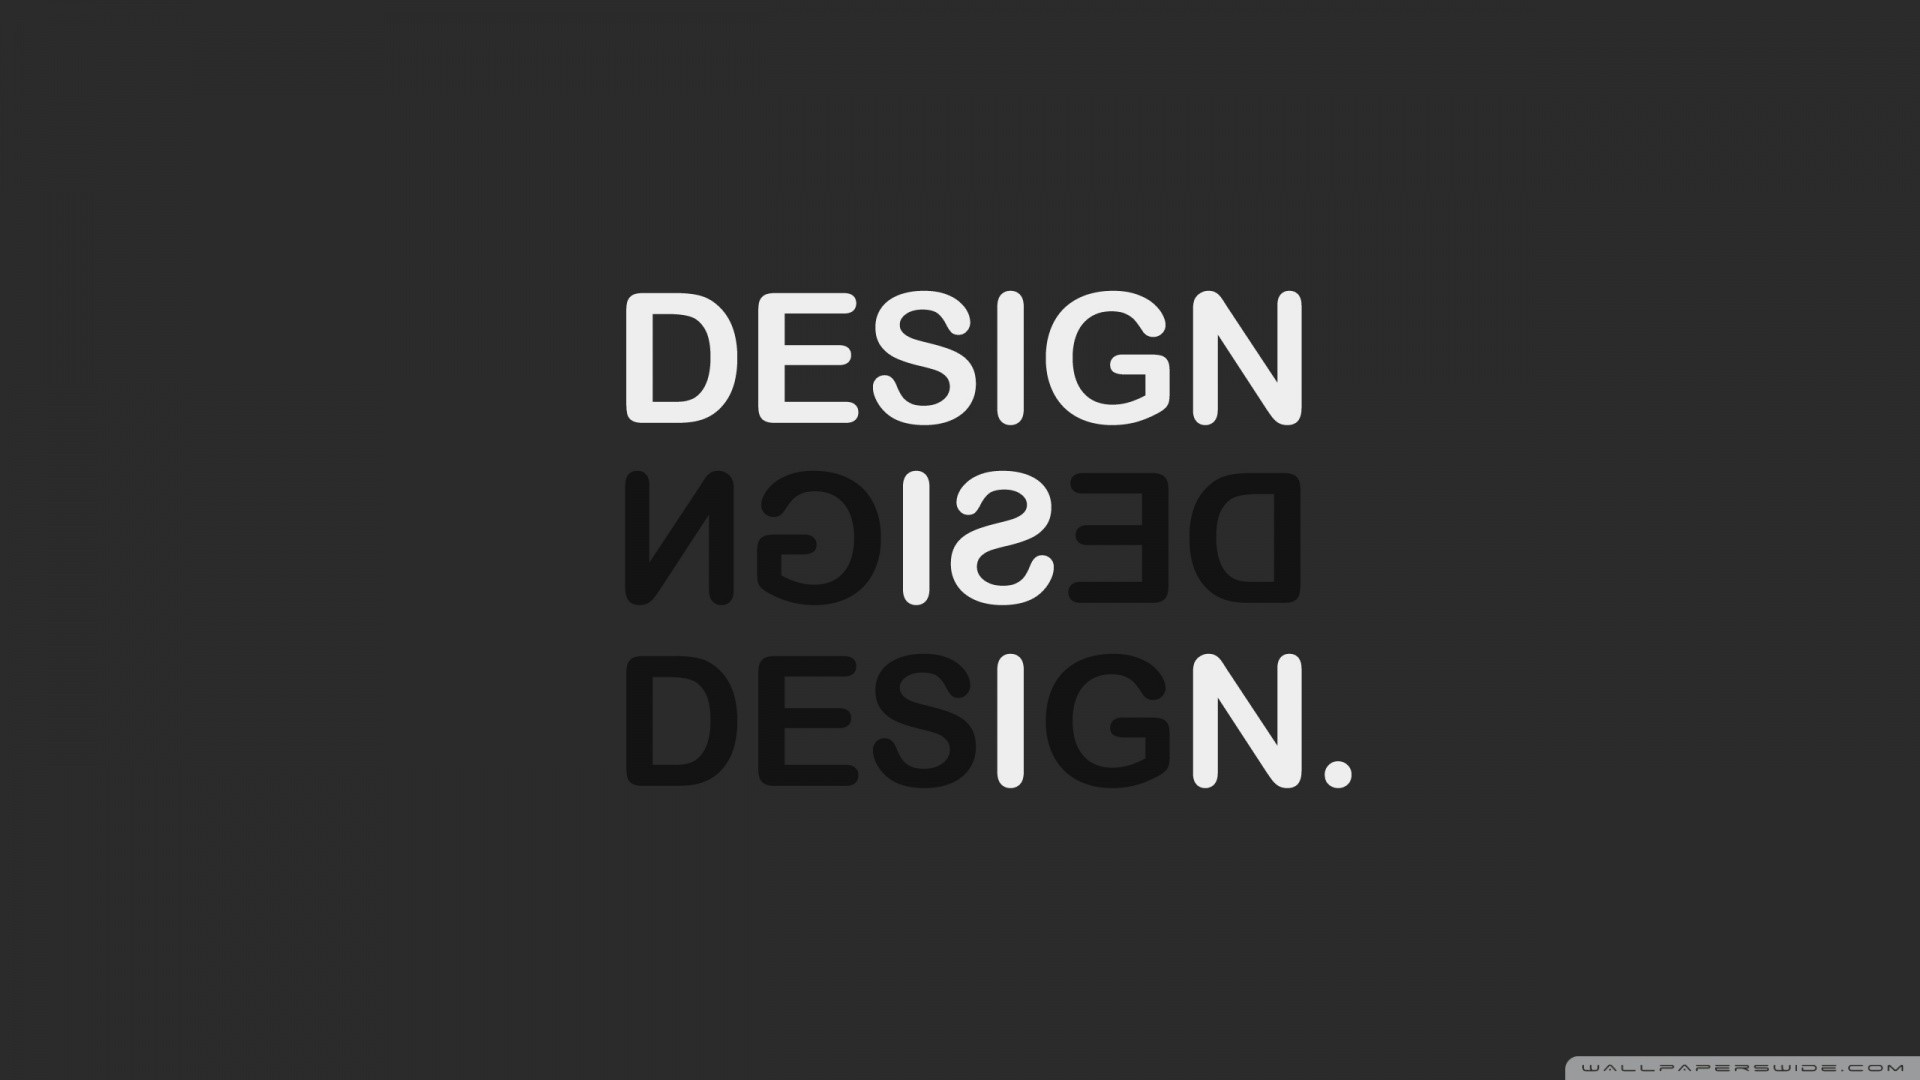 … design typography i hd desktop wallpaper high definition …